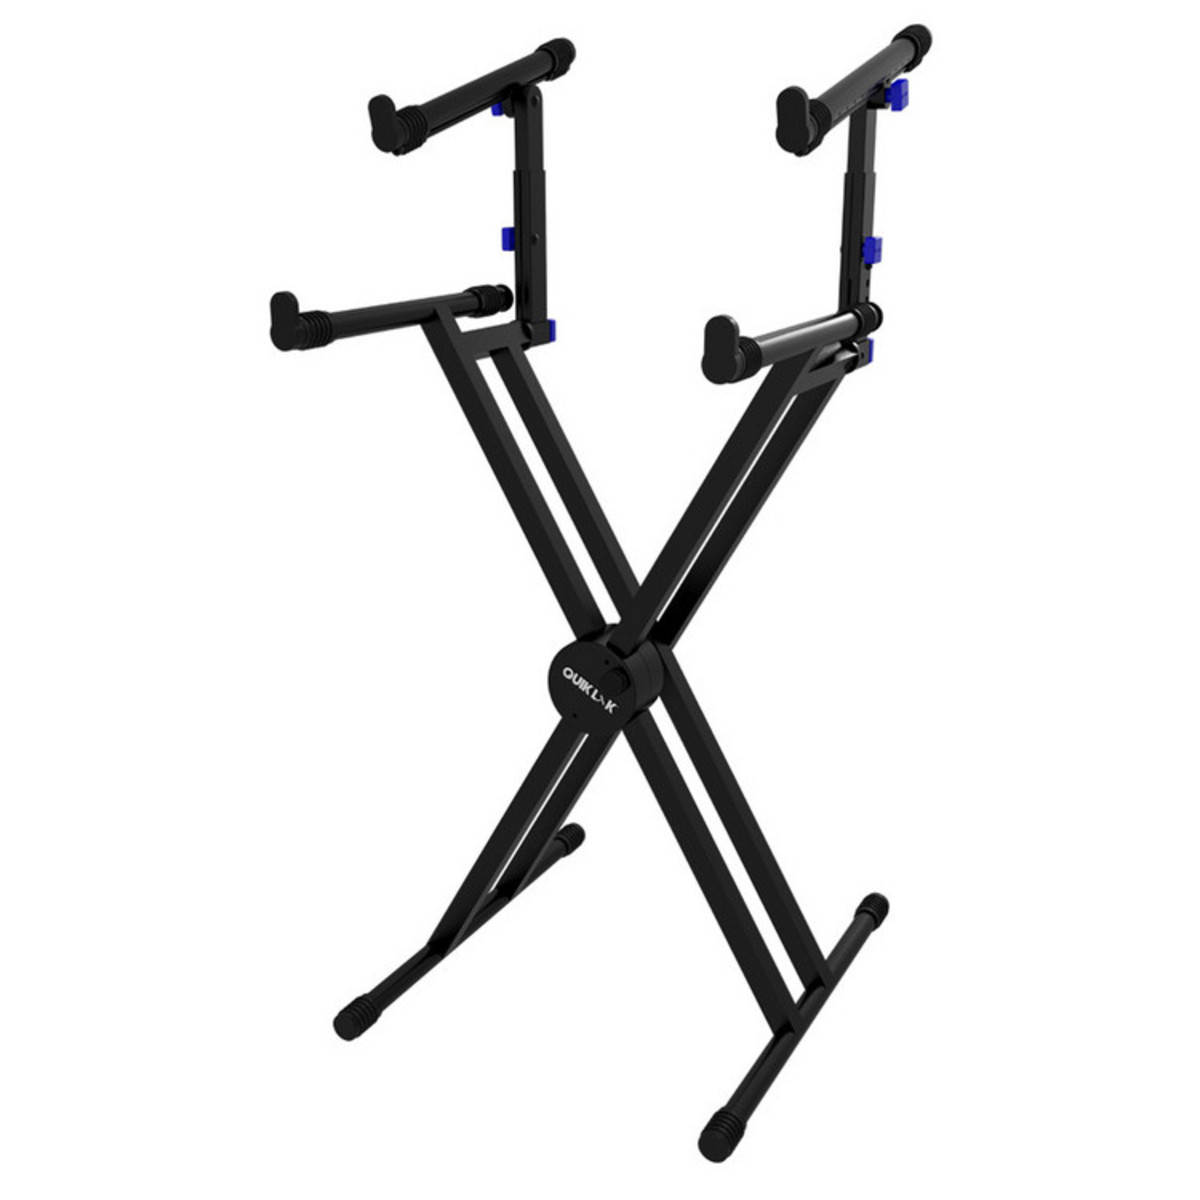 quiklok ql742 heavy duty double braced two tier keyboard stand black b stock at gear4music. Black Bedroom Furniture Sets. Home Design Ideas